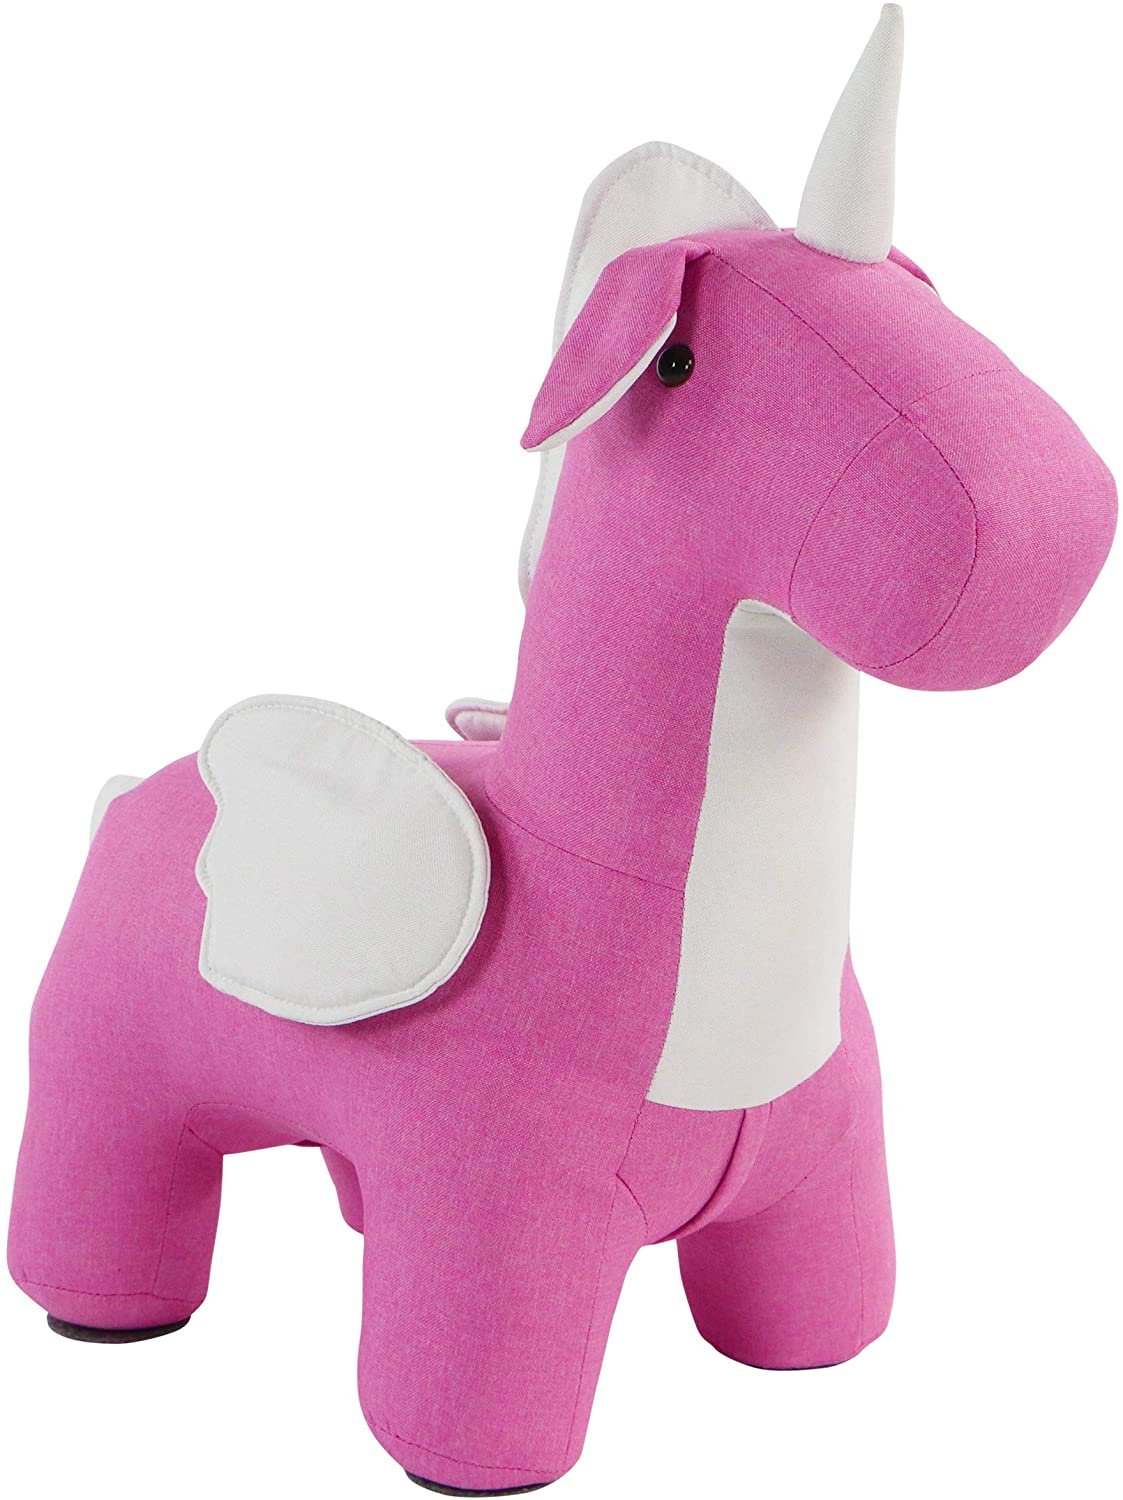 Critter Sitters Pink-White 13-in. Seat Height Flying Unicorn Animal Shape Ottoman